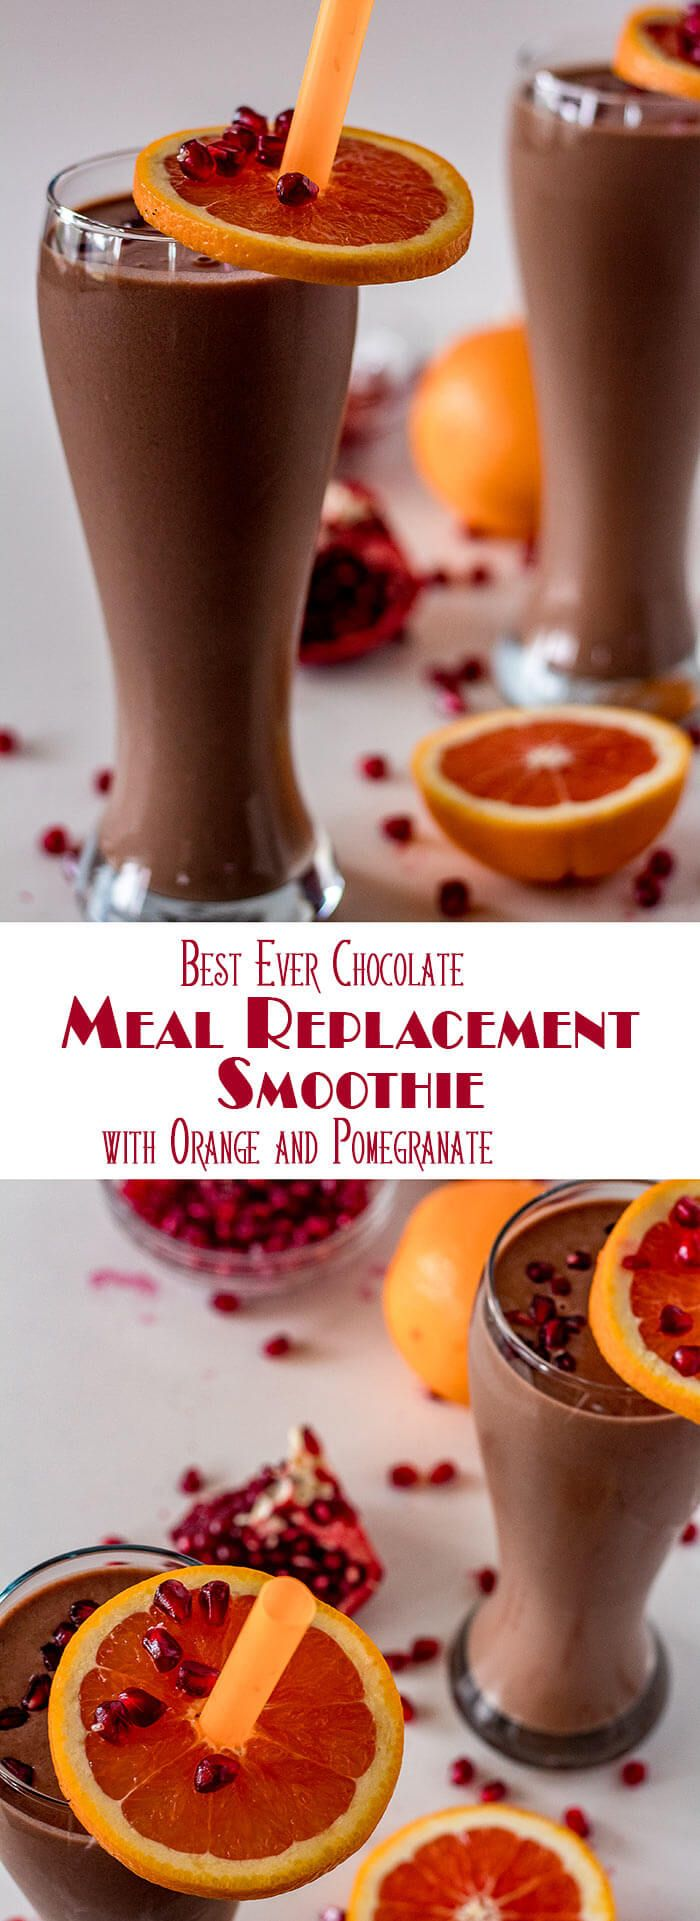 A chocolate, orange, and pomegranate smoothie that tastes more like a milk shake than a workout recovery drink? Yes! ThisBest Ever Chocolate Meal Replacement Smoothie comes in at 33 grams of protein per serving, and 443 calories with the help of Bob's Red Mill Protein and Fiber Nutritional Booster... A tasty (and healthy) start to the New Year! #BobsRedMill #mealreplacementsmoothie #chocolatesmoothie #chocolateproteinshake via @TamaraBMS